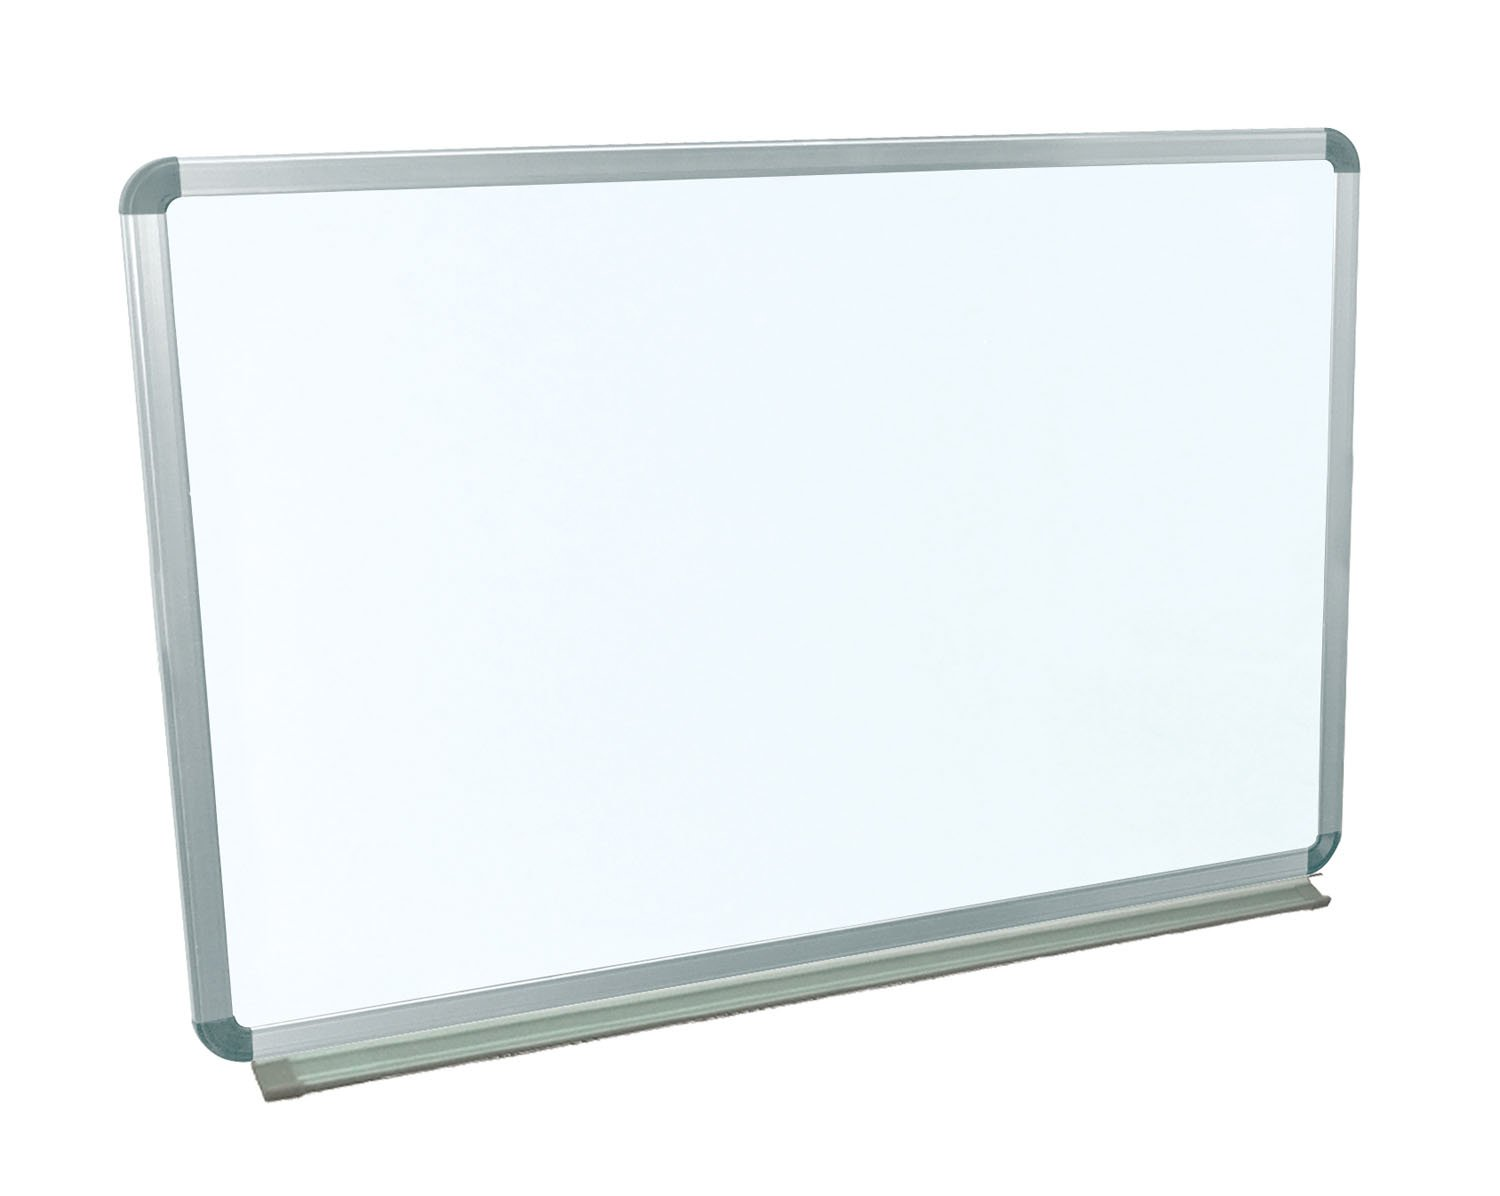 Luxor 36'' x 24'' Wall Mounted Magnetic Whiteboard